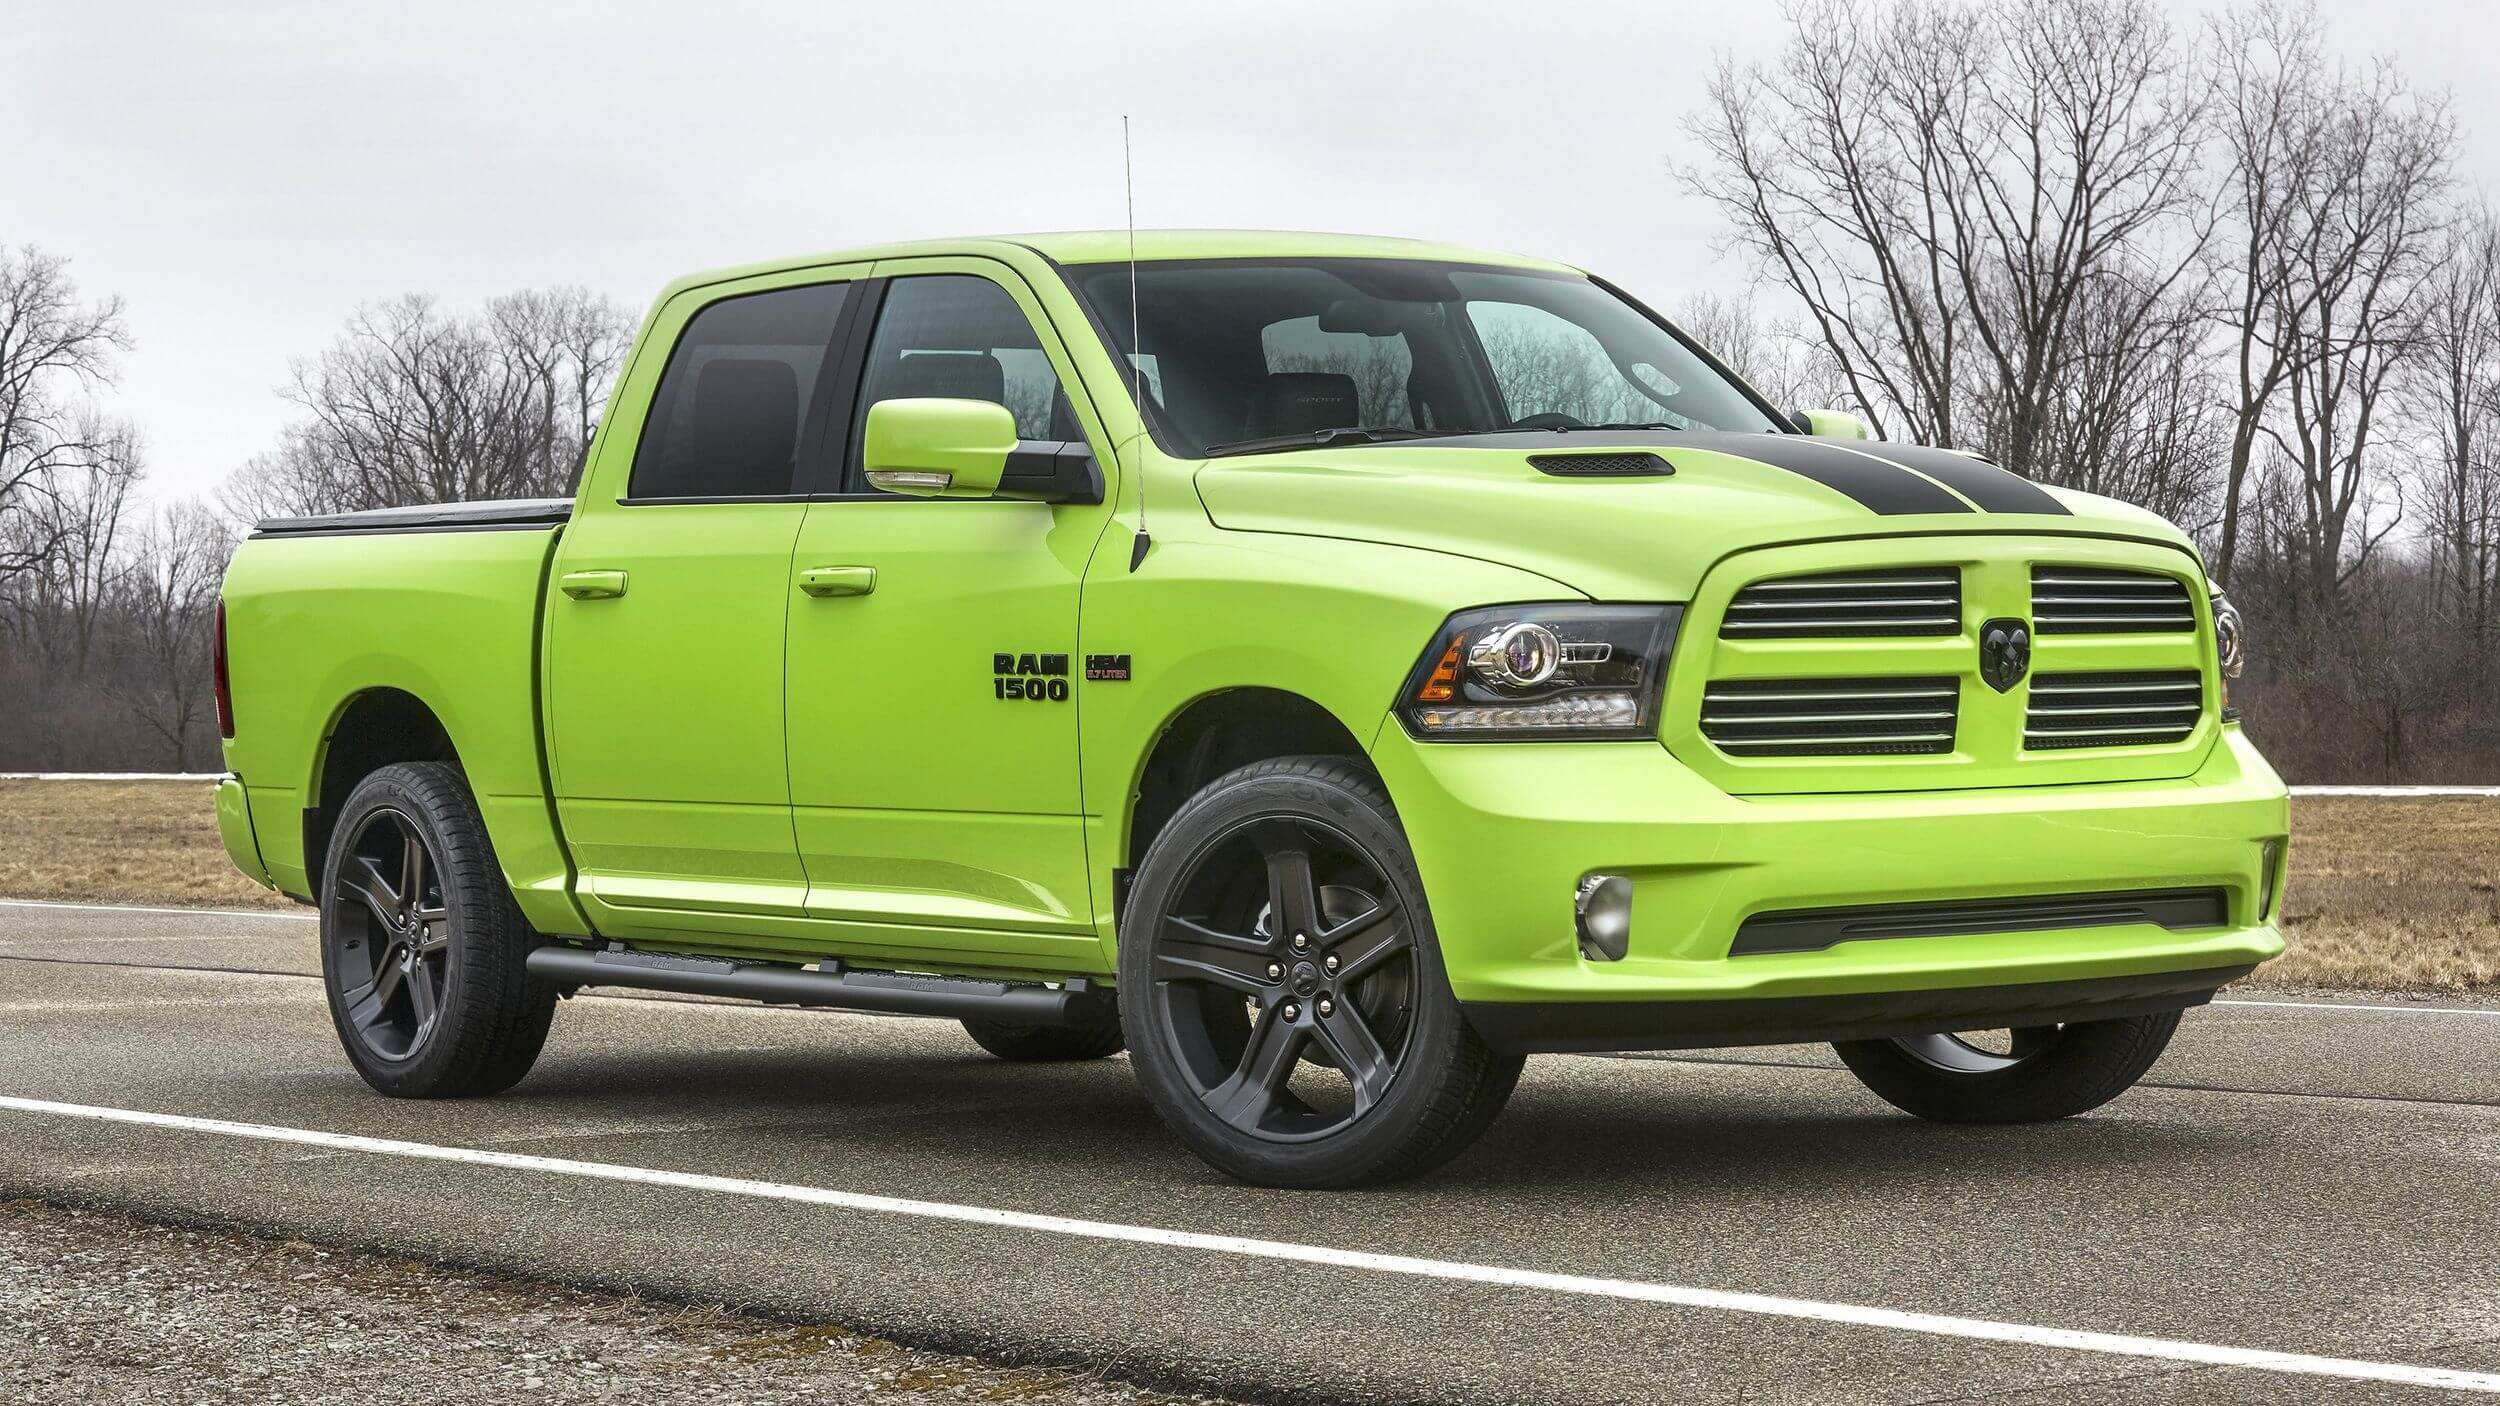 60 The New Ram Dodge 2019 Picture Release Date And Review Ratings by New Ram Dodge 2019 Picture Release Date And Review